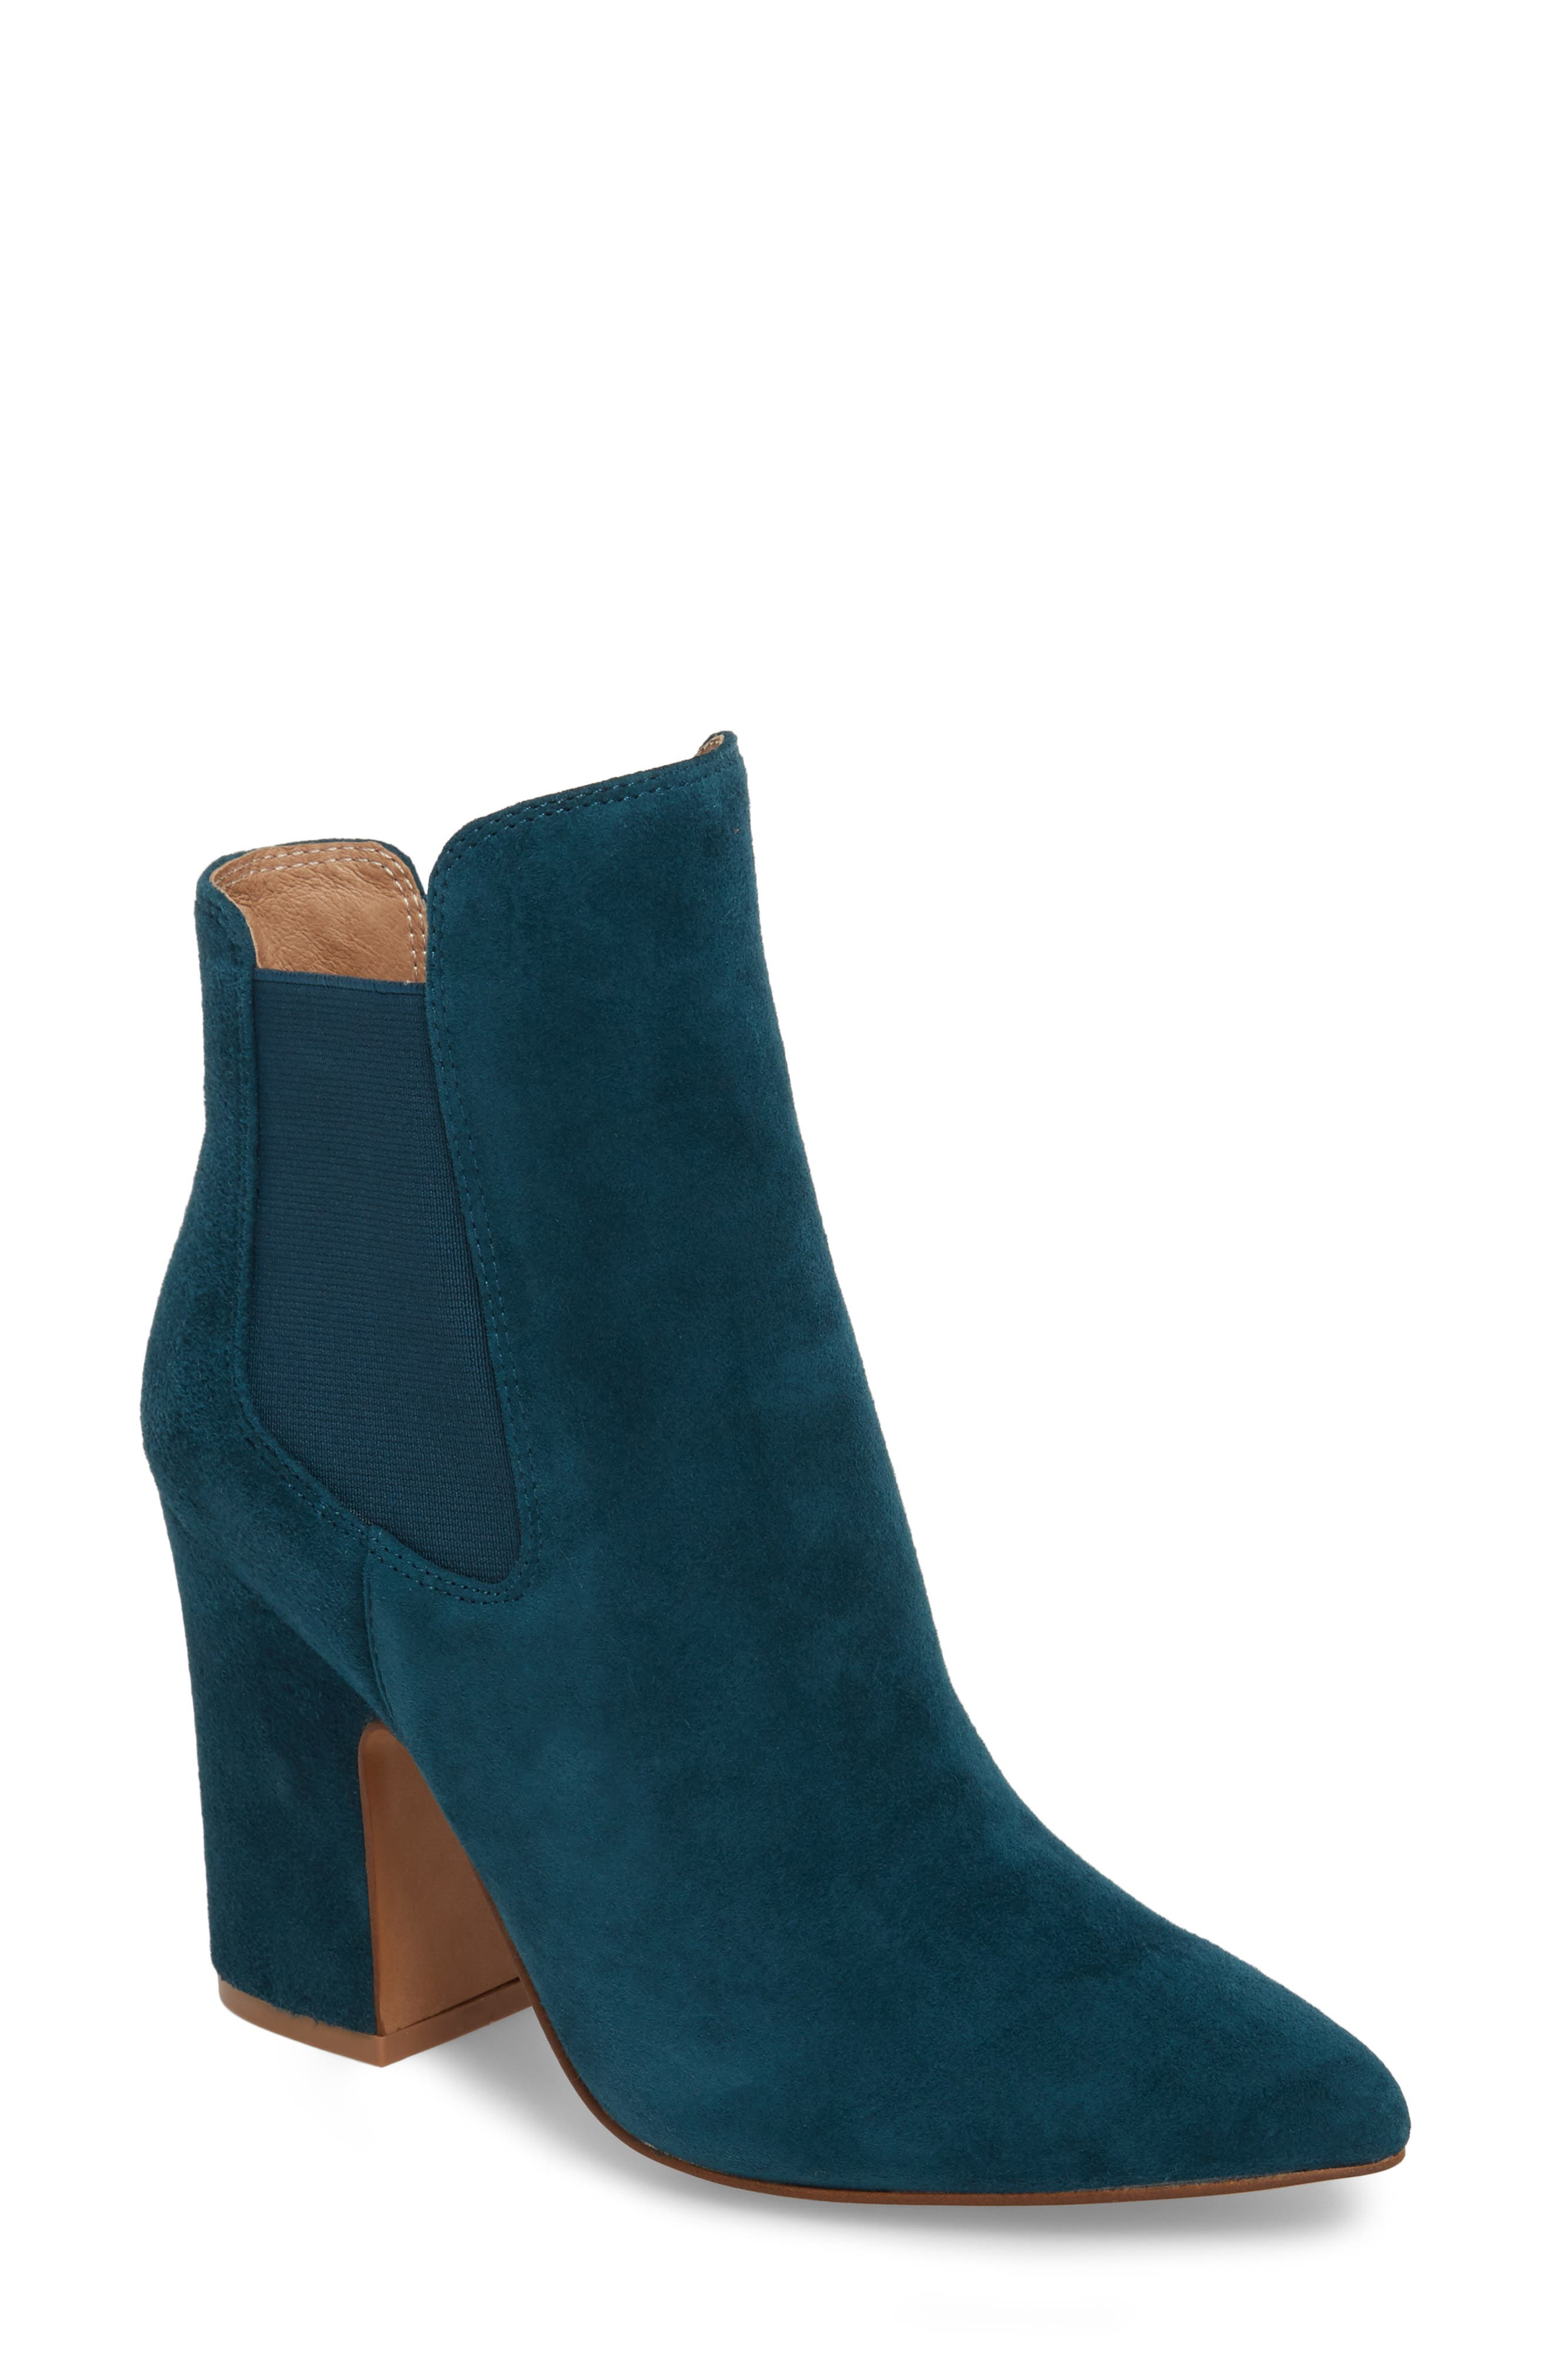 Starlight Bootie,                         Main,                         color, Teal Suede